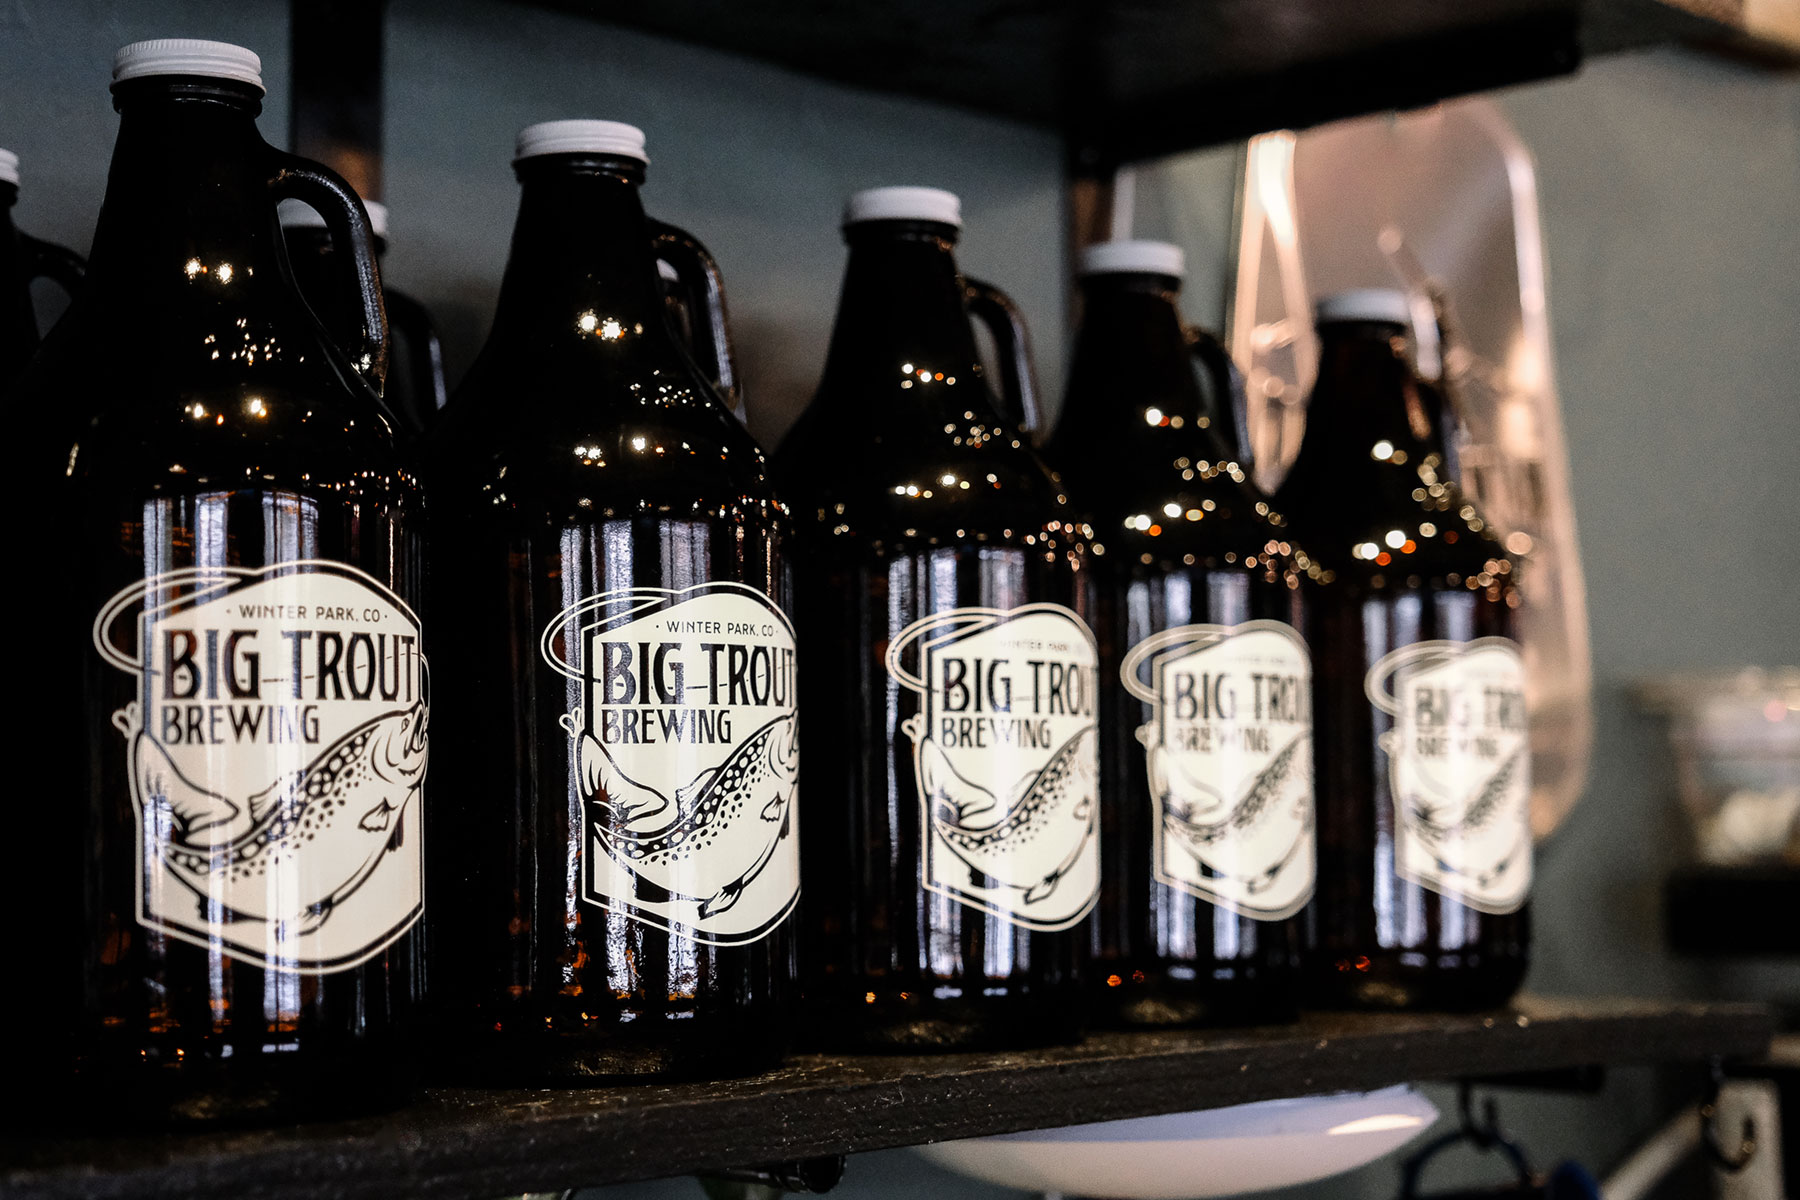 Growlers at Big Trout Brewing in Winter Park Co